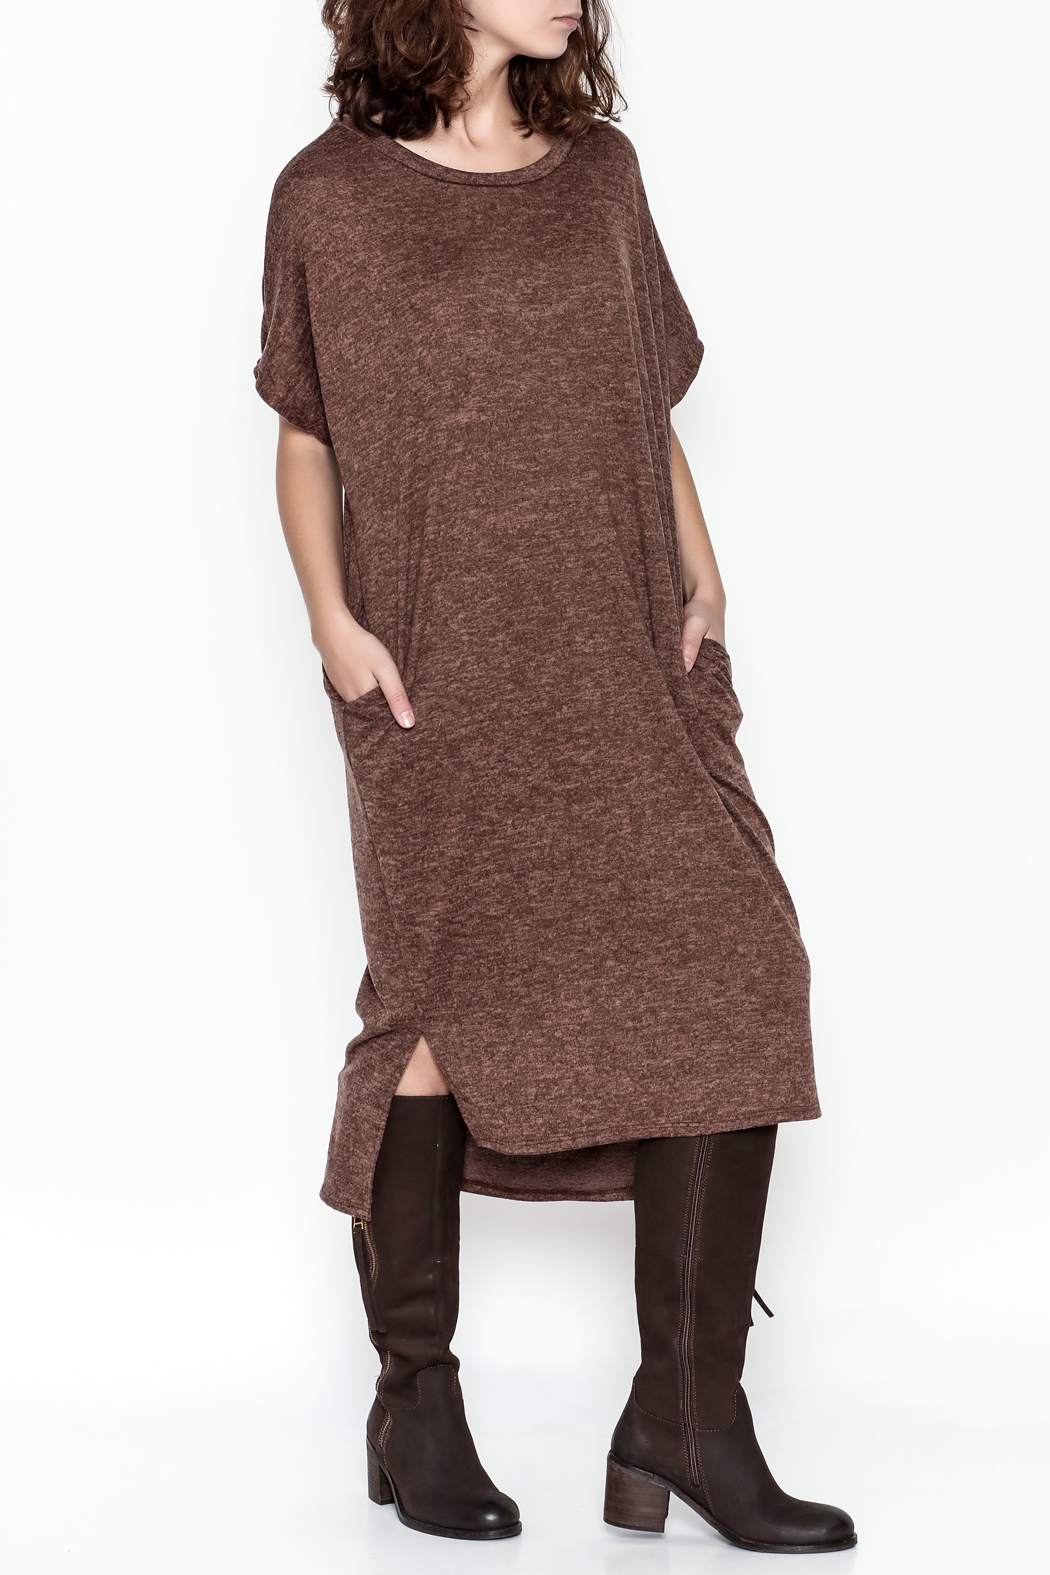 E2 Clothing Marled Sweater Dress - Front Cropped Image